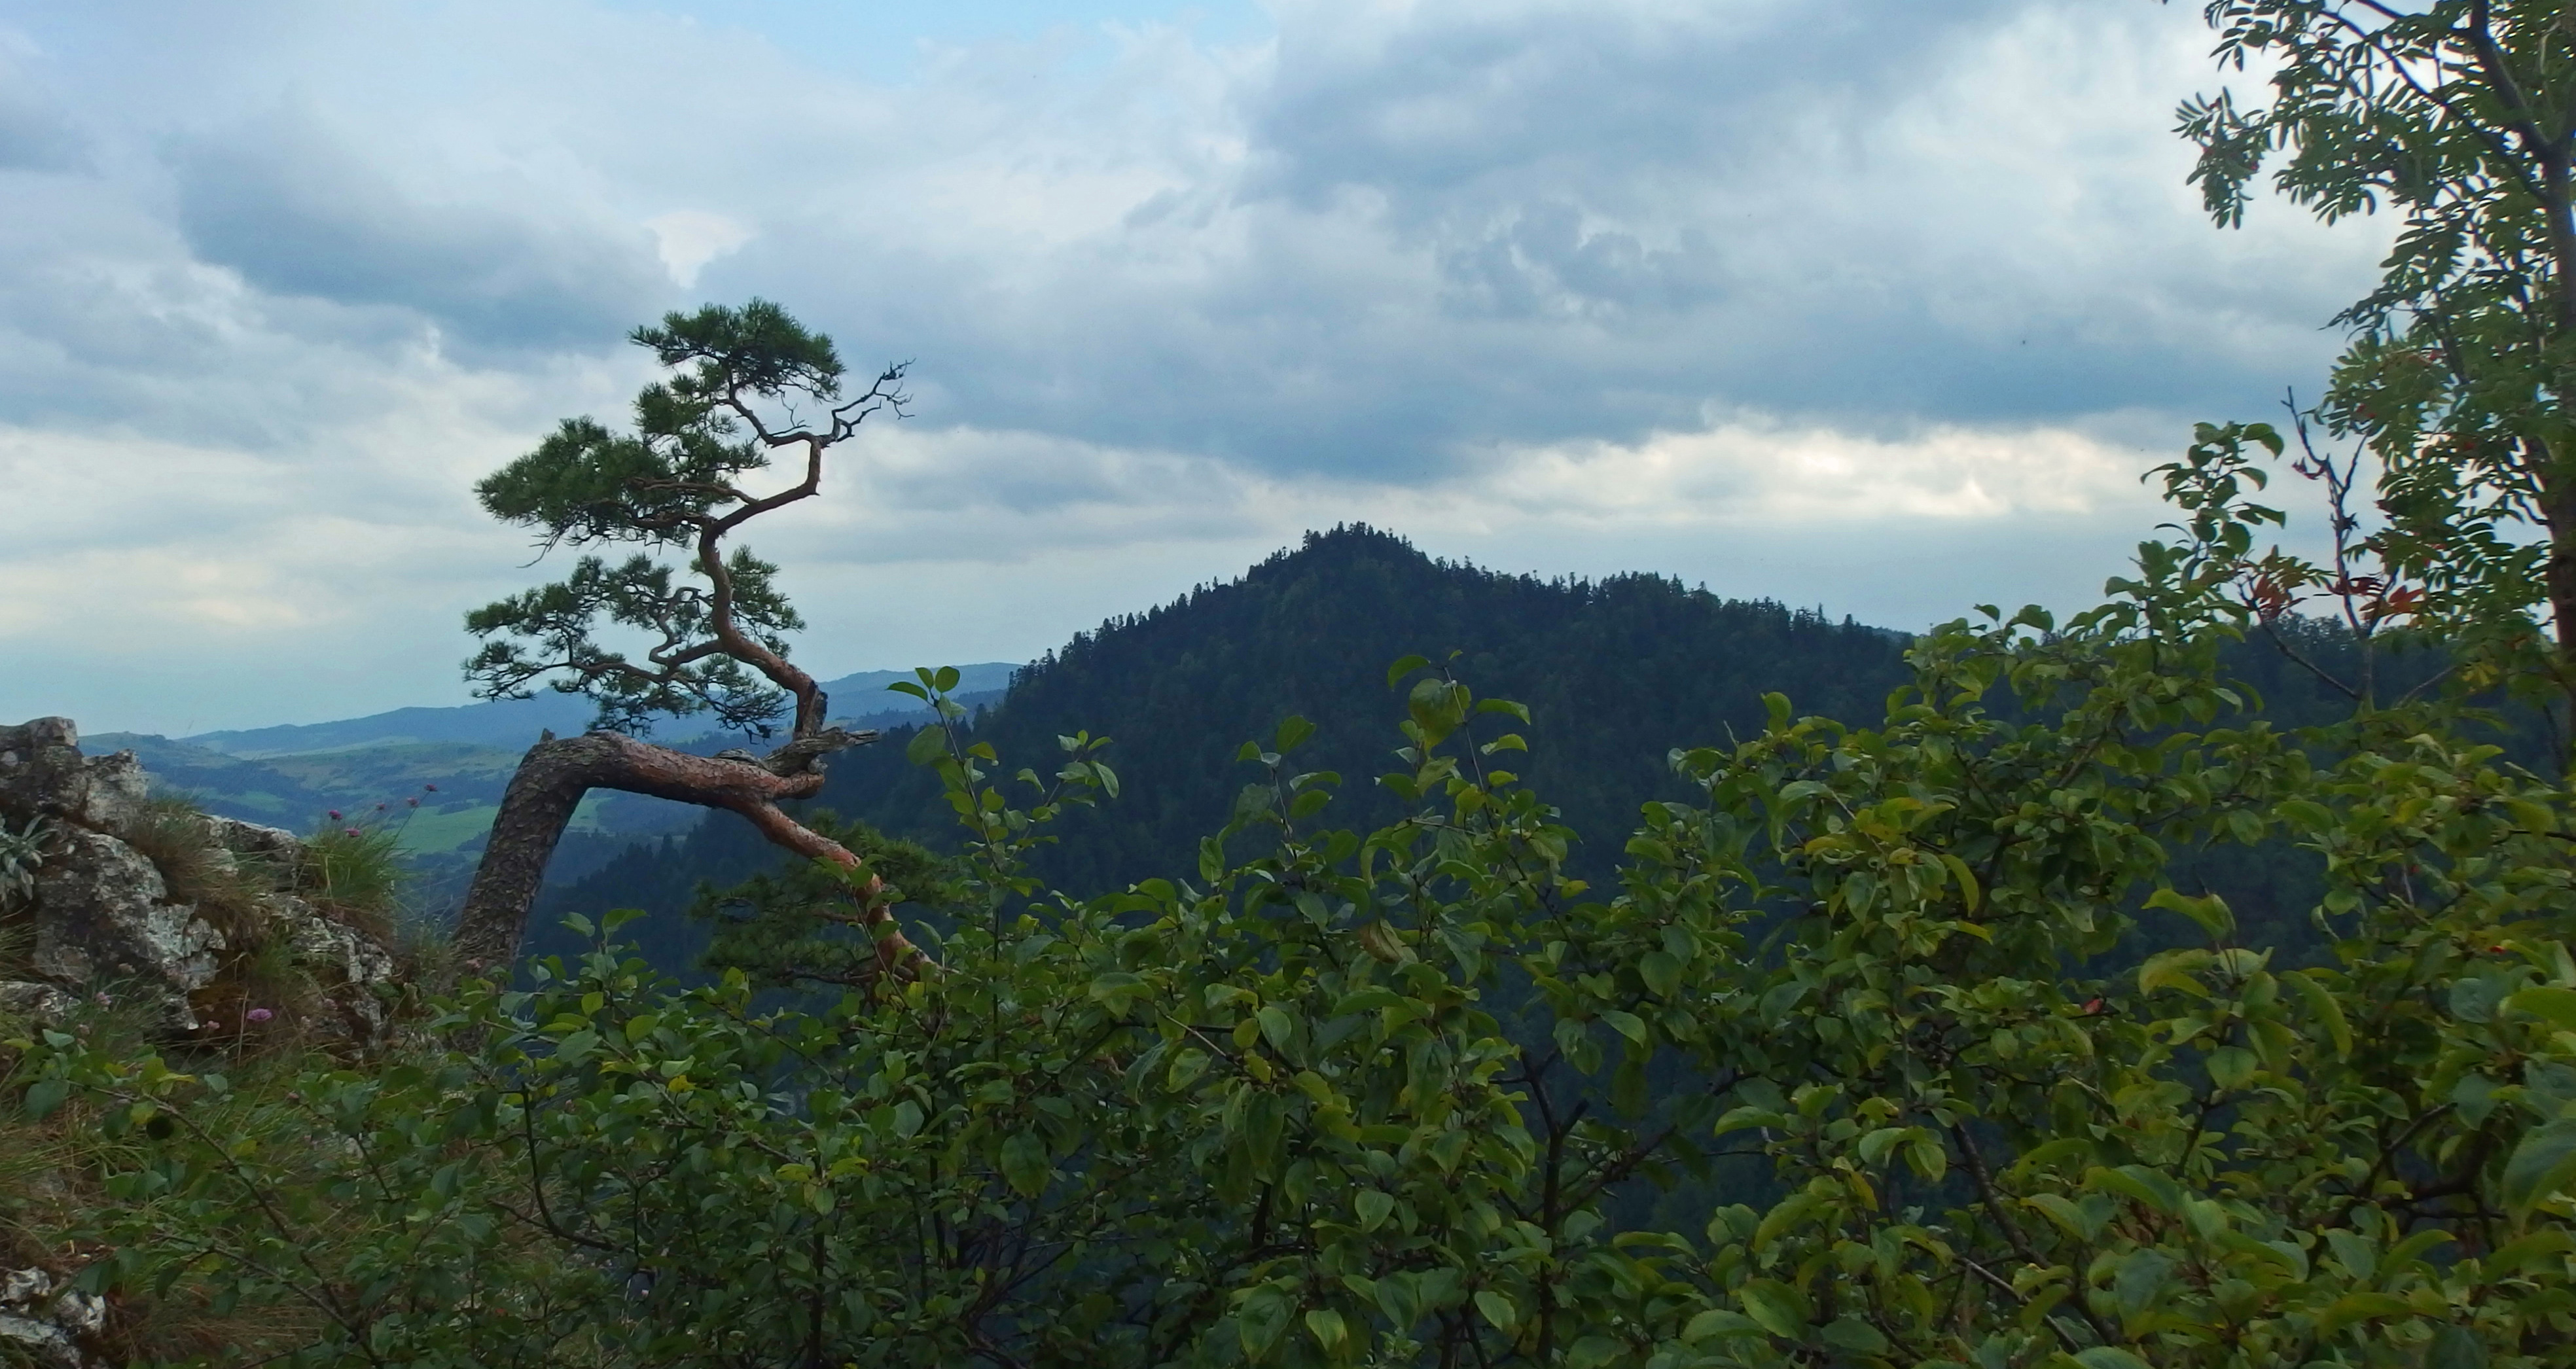 Pieniny Mountains – small but beautiful